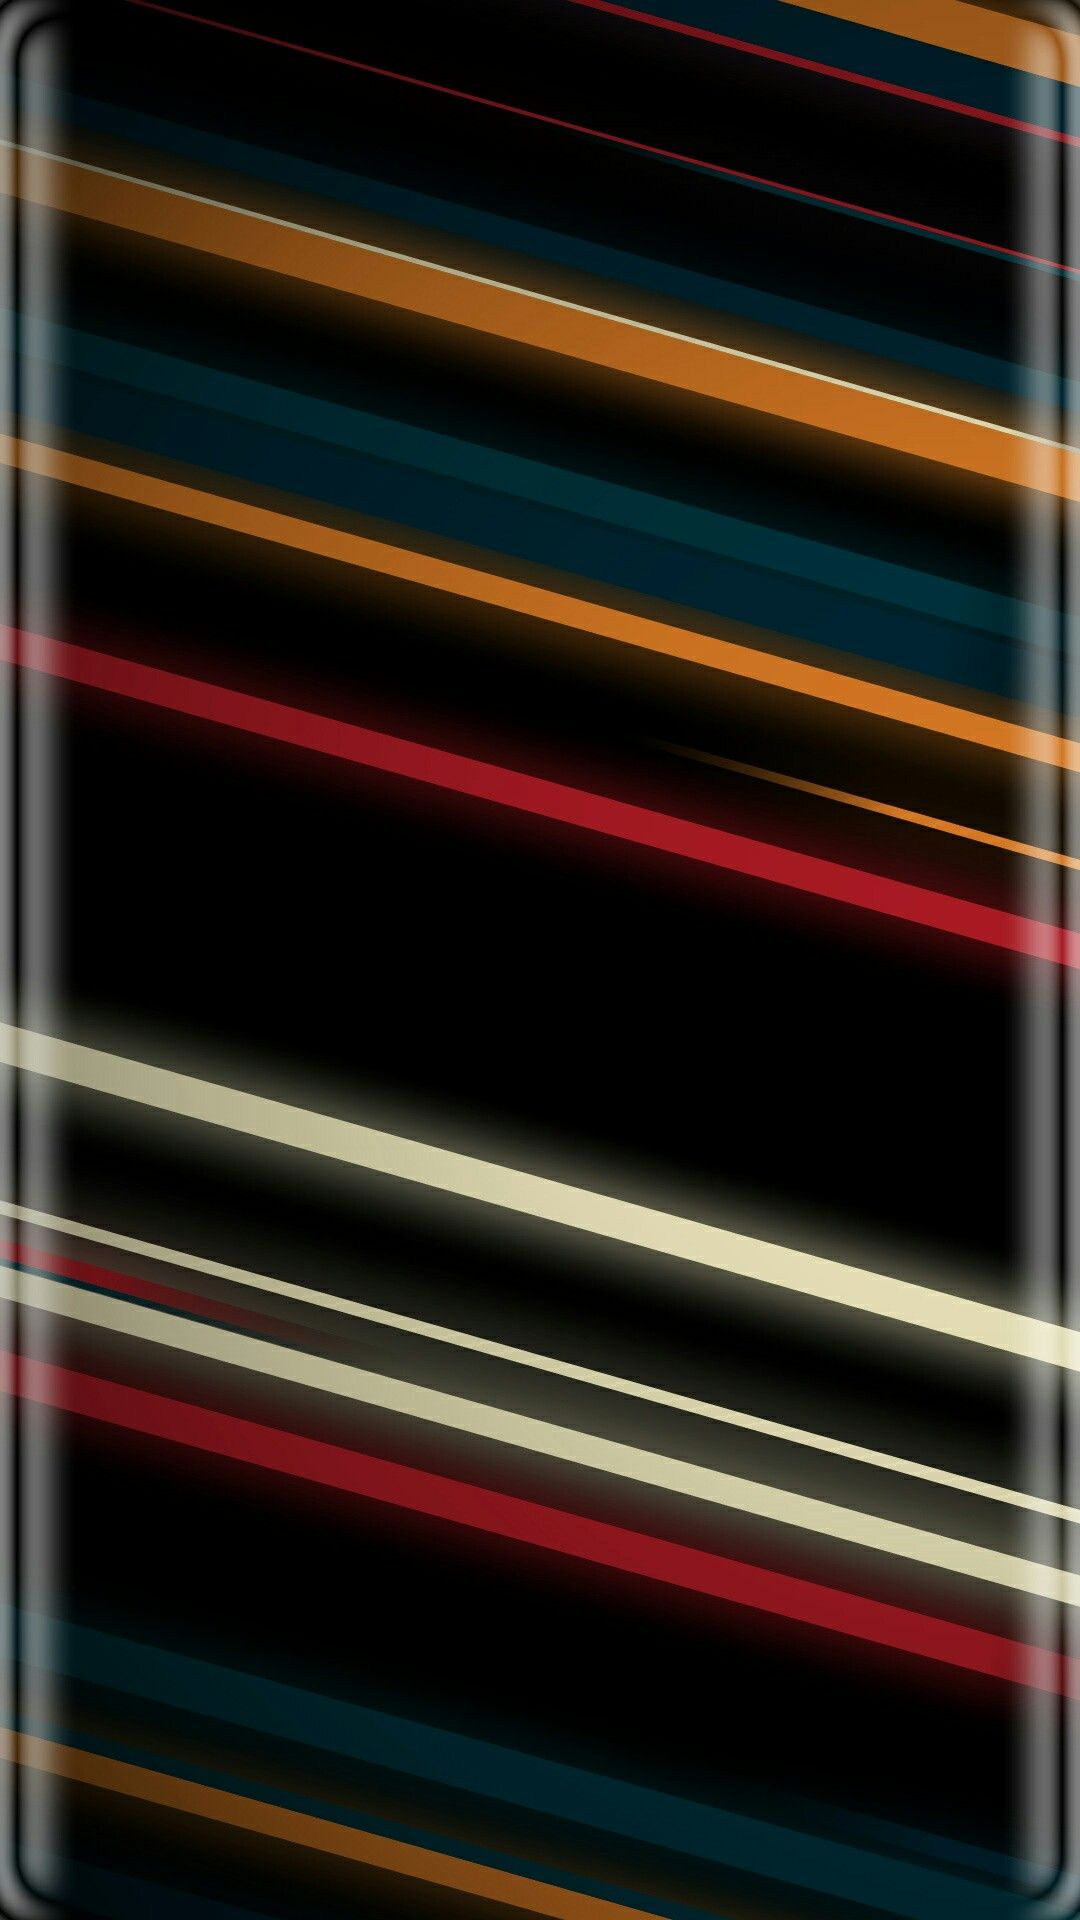 Pin By Wurth It On Art Eclectomatic Images Samsung Wallpaper Wallpaper Edge Iphone Homescreen Wallpaper